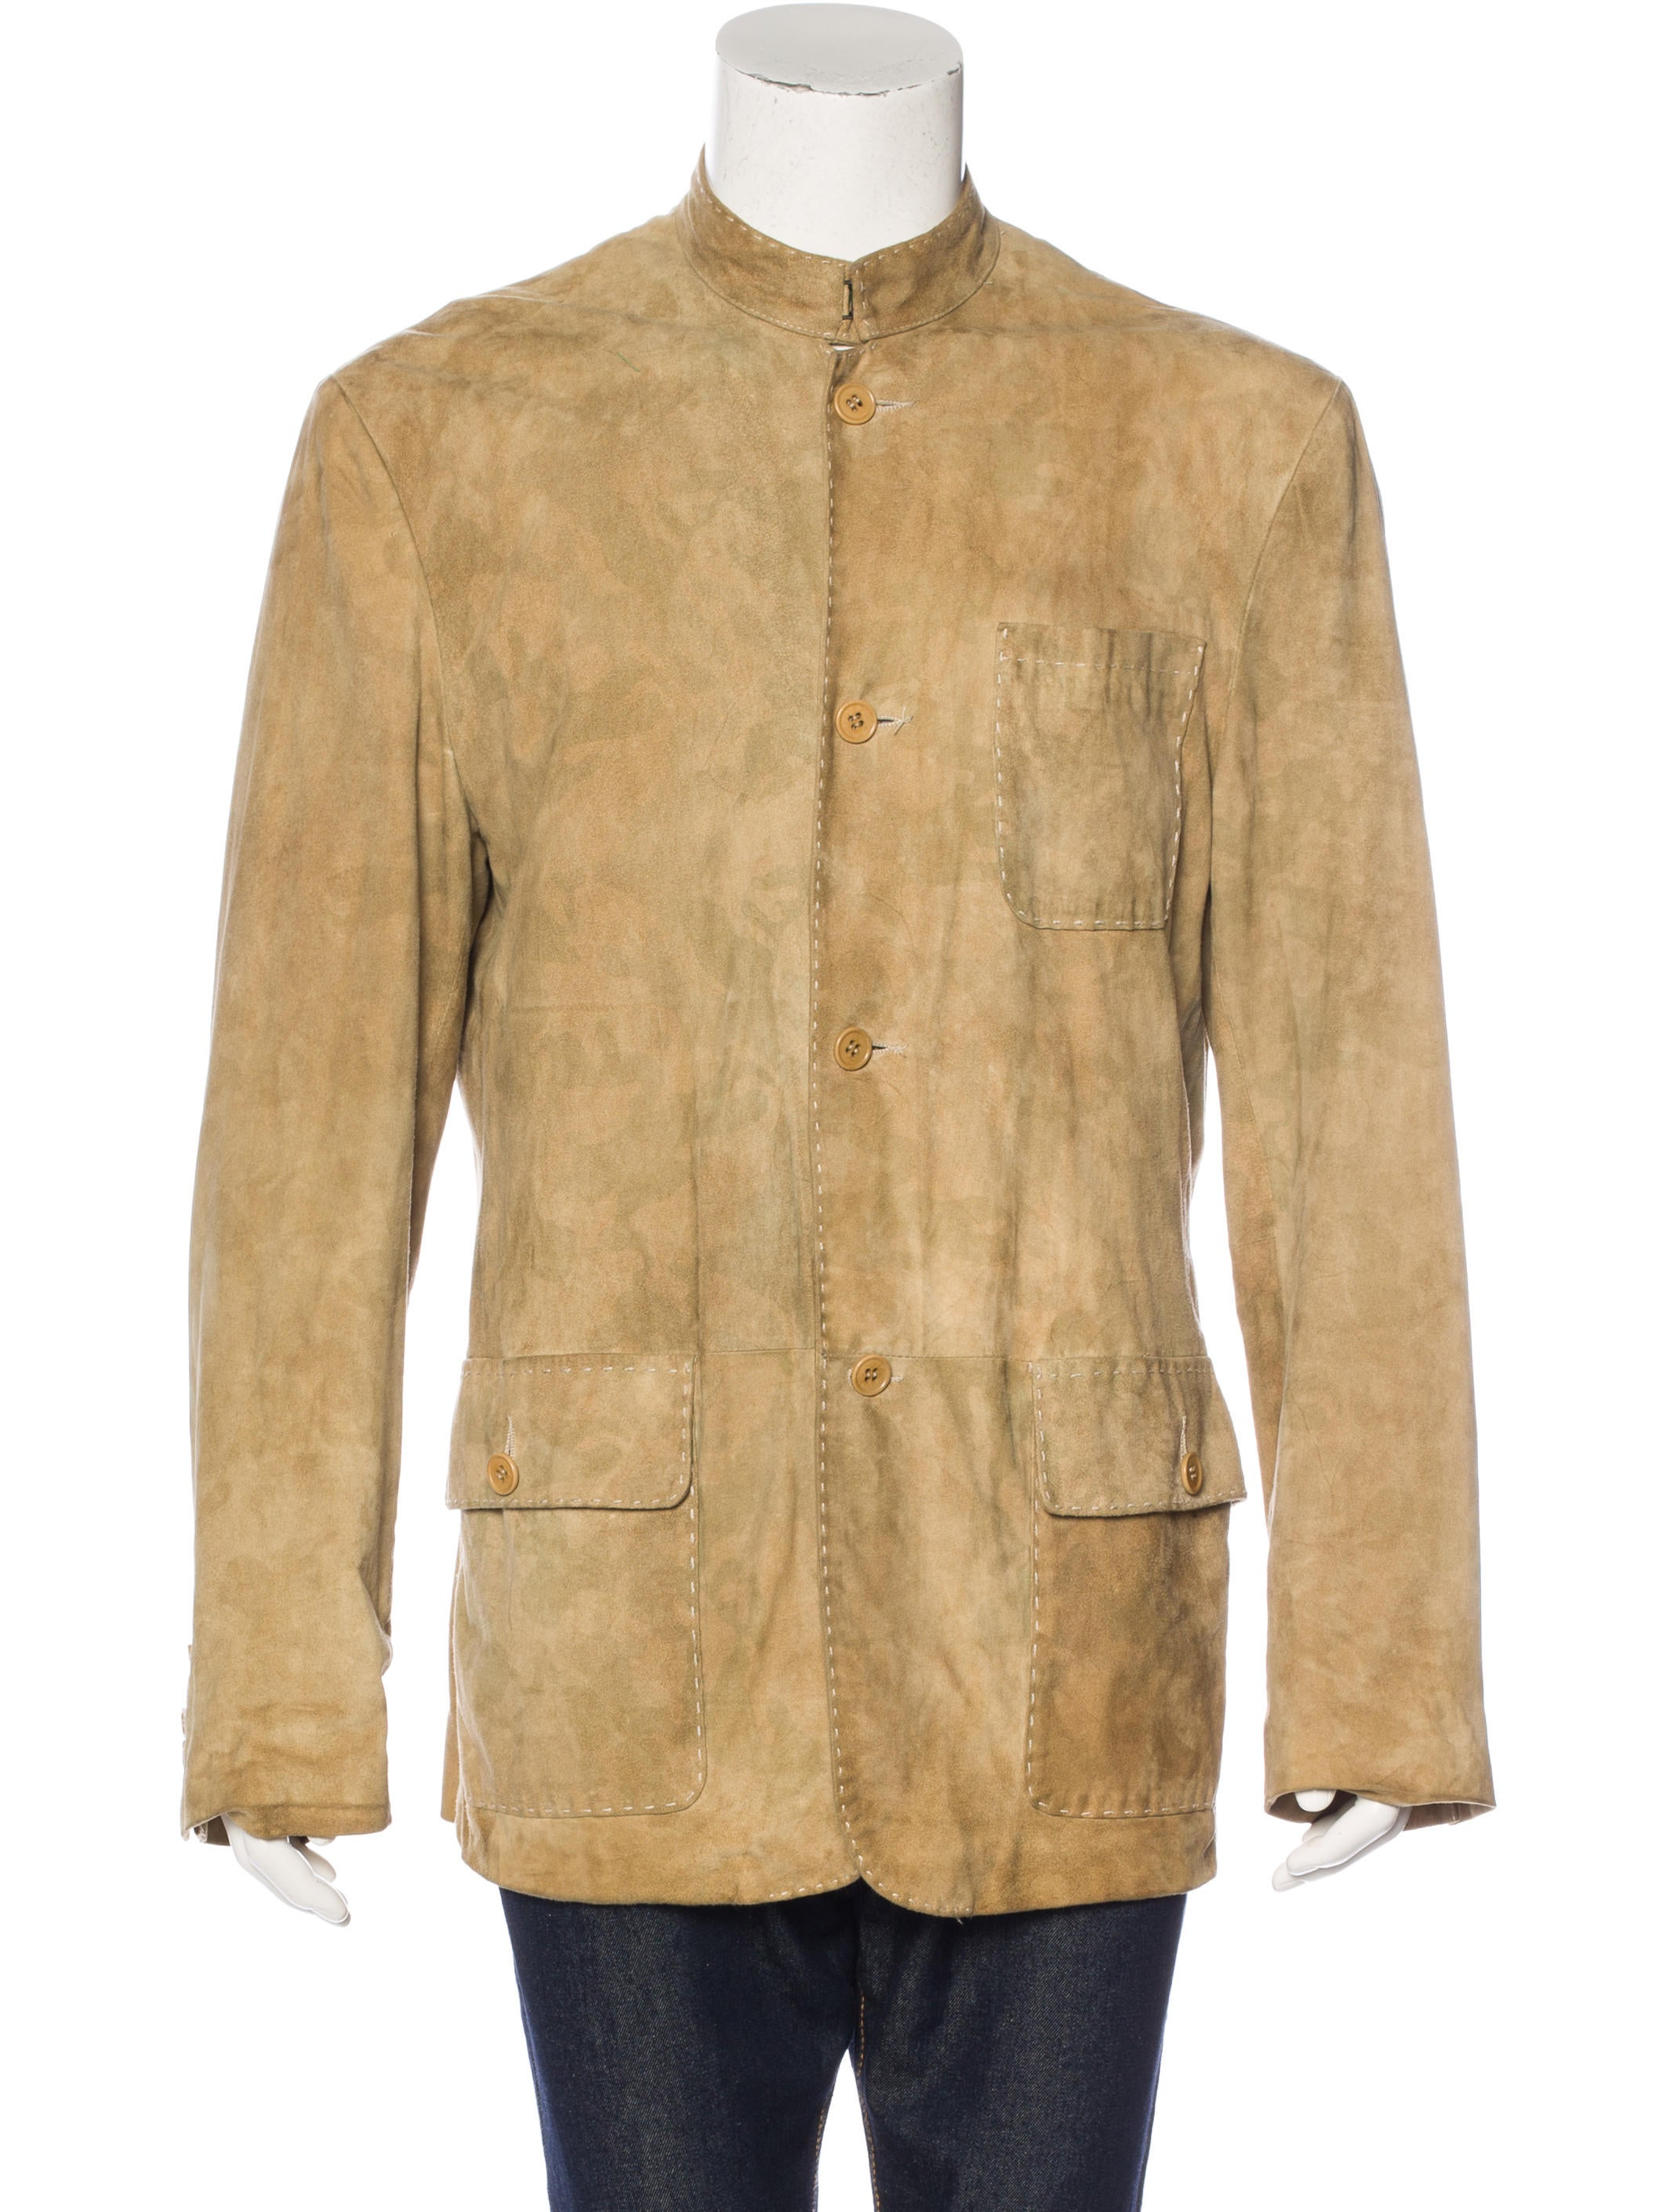 john varvatos suede shirt jacket clothing jva23356